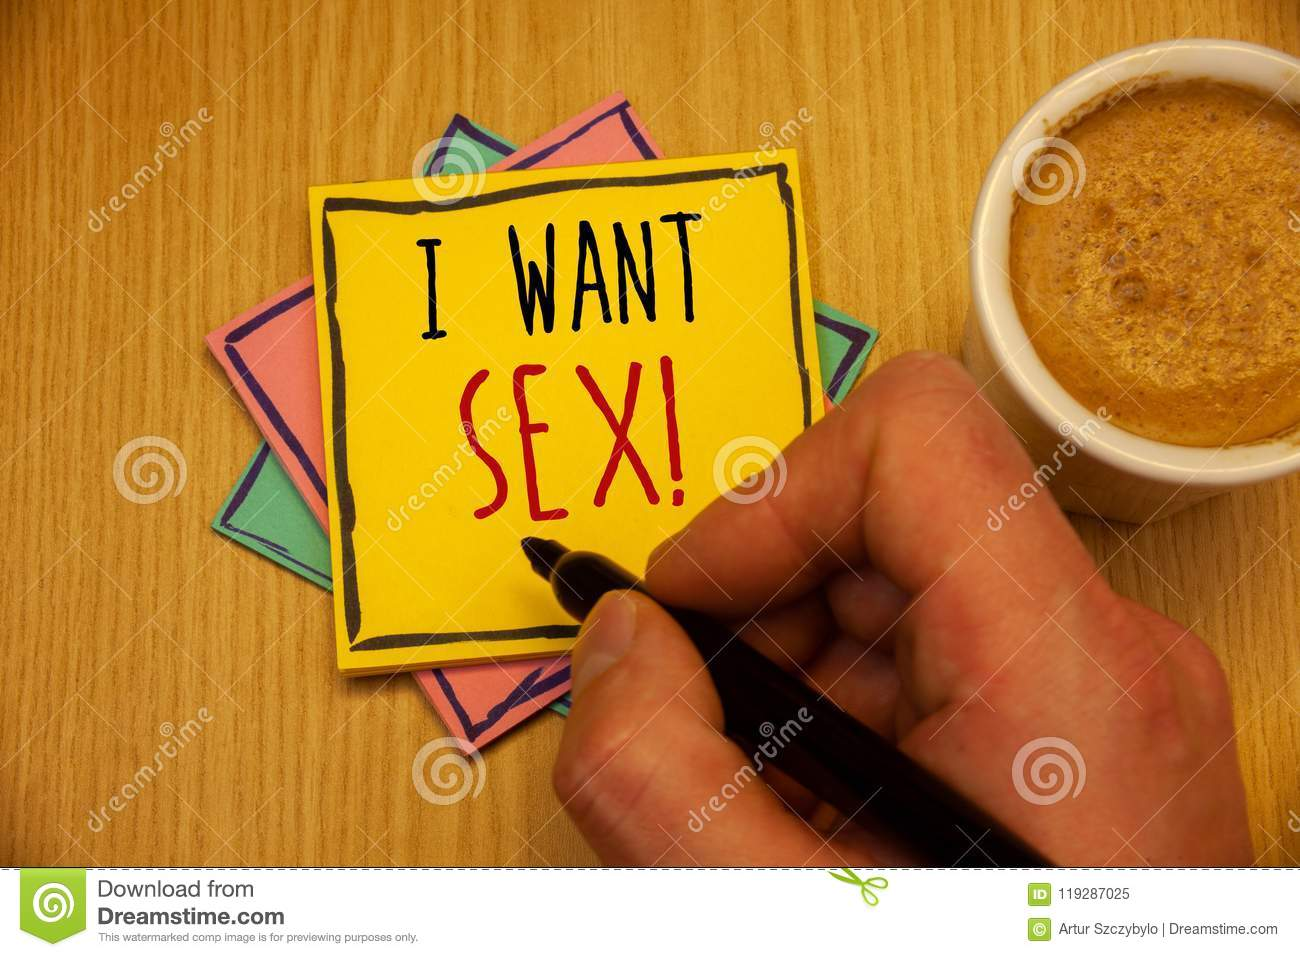 I want to know all about sexual intercourse